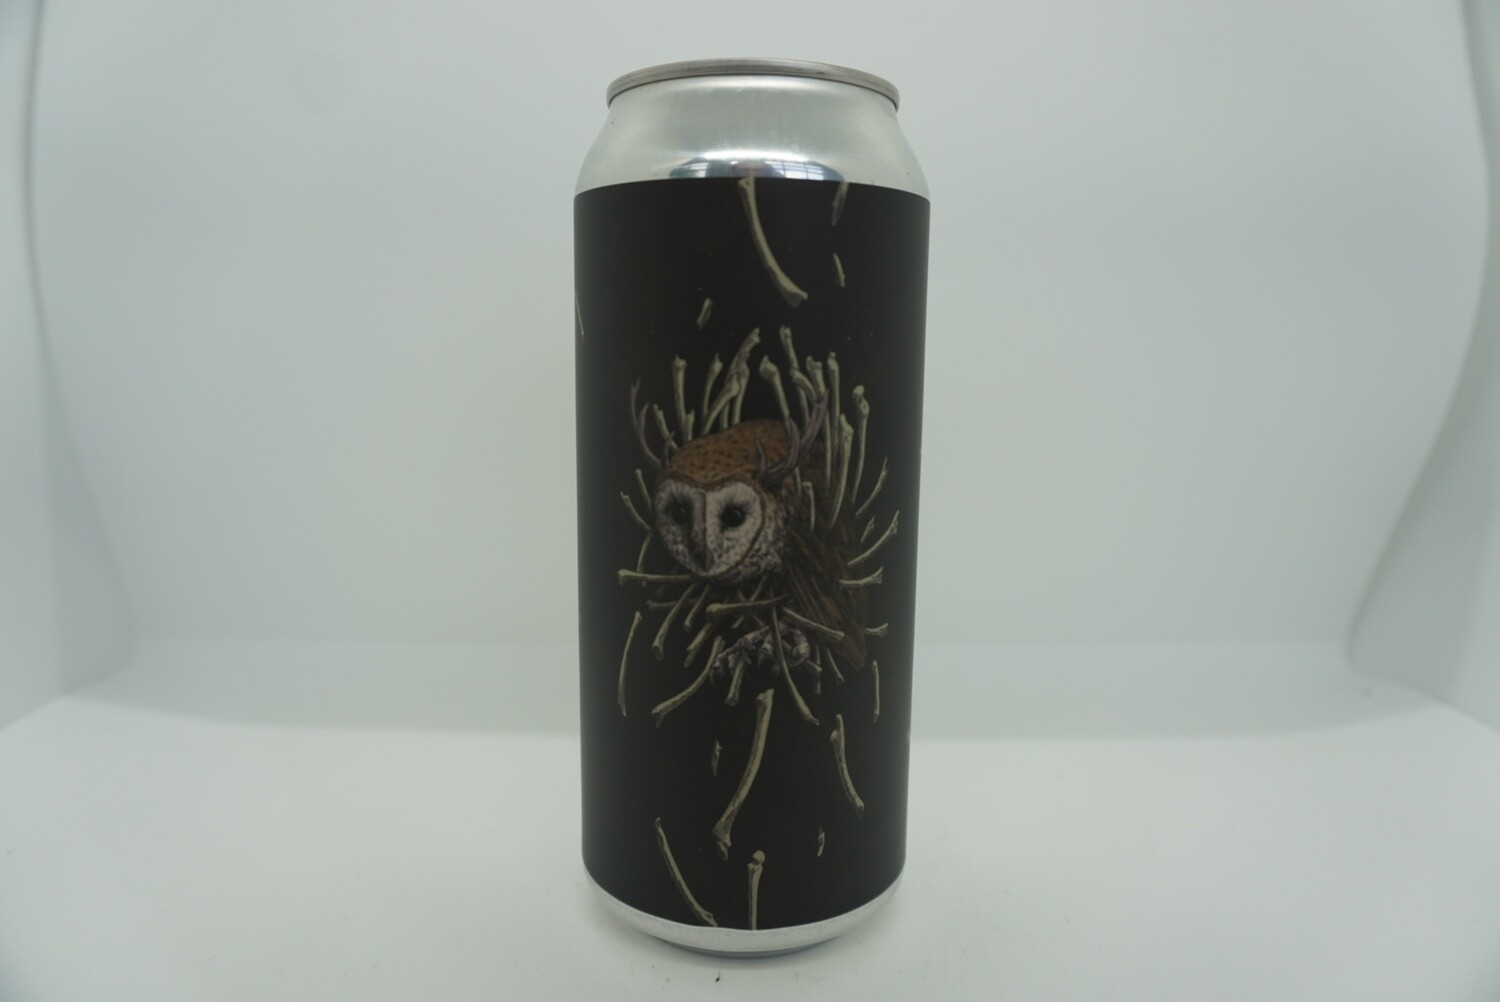 Unseen Creatures - From The Inside Out - Farmhouse IPA - 7.7% ABV - 16oz Can